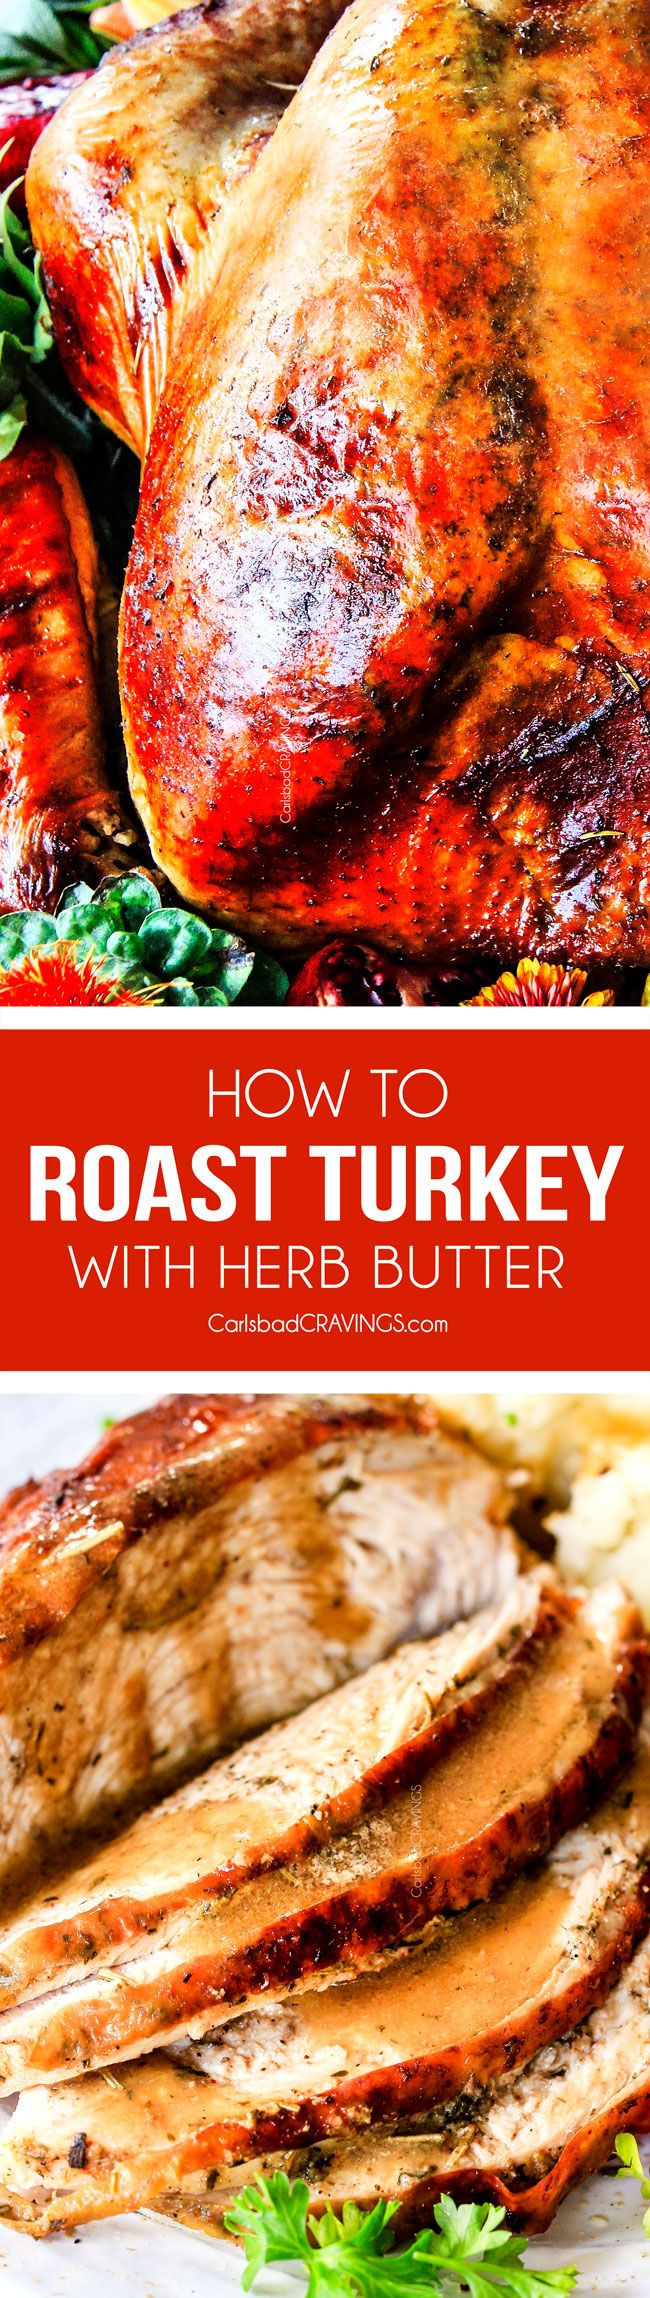 This is the juiciest, most tender, flavorful Roast Turkey I have ever made! EVERYONE wanted the recipe! I will never use another turkey recipe again, this one is a winner!#thanksgiving #turkey #thanksgivingturkey